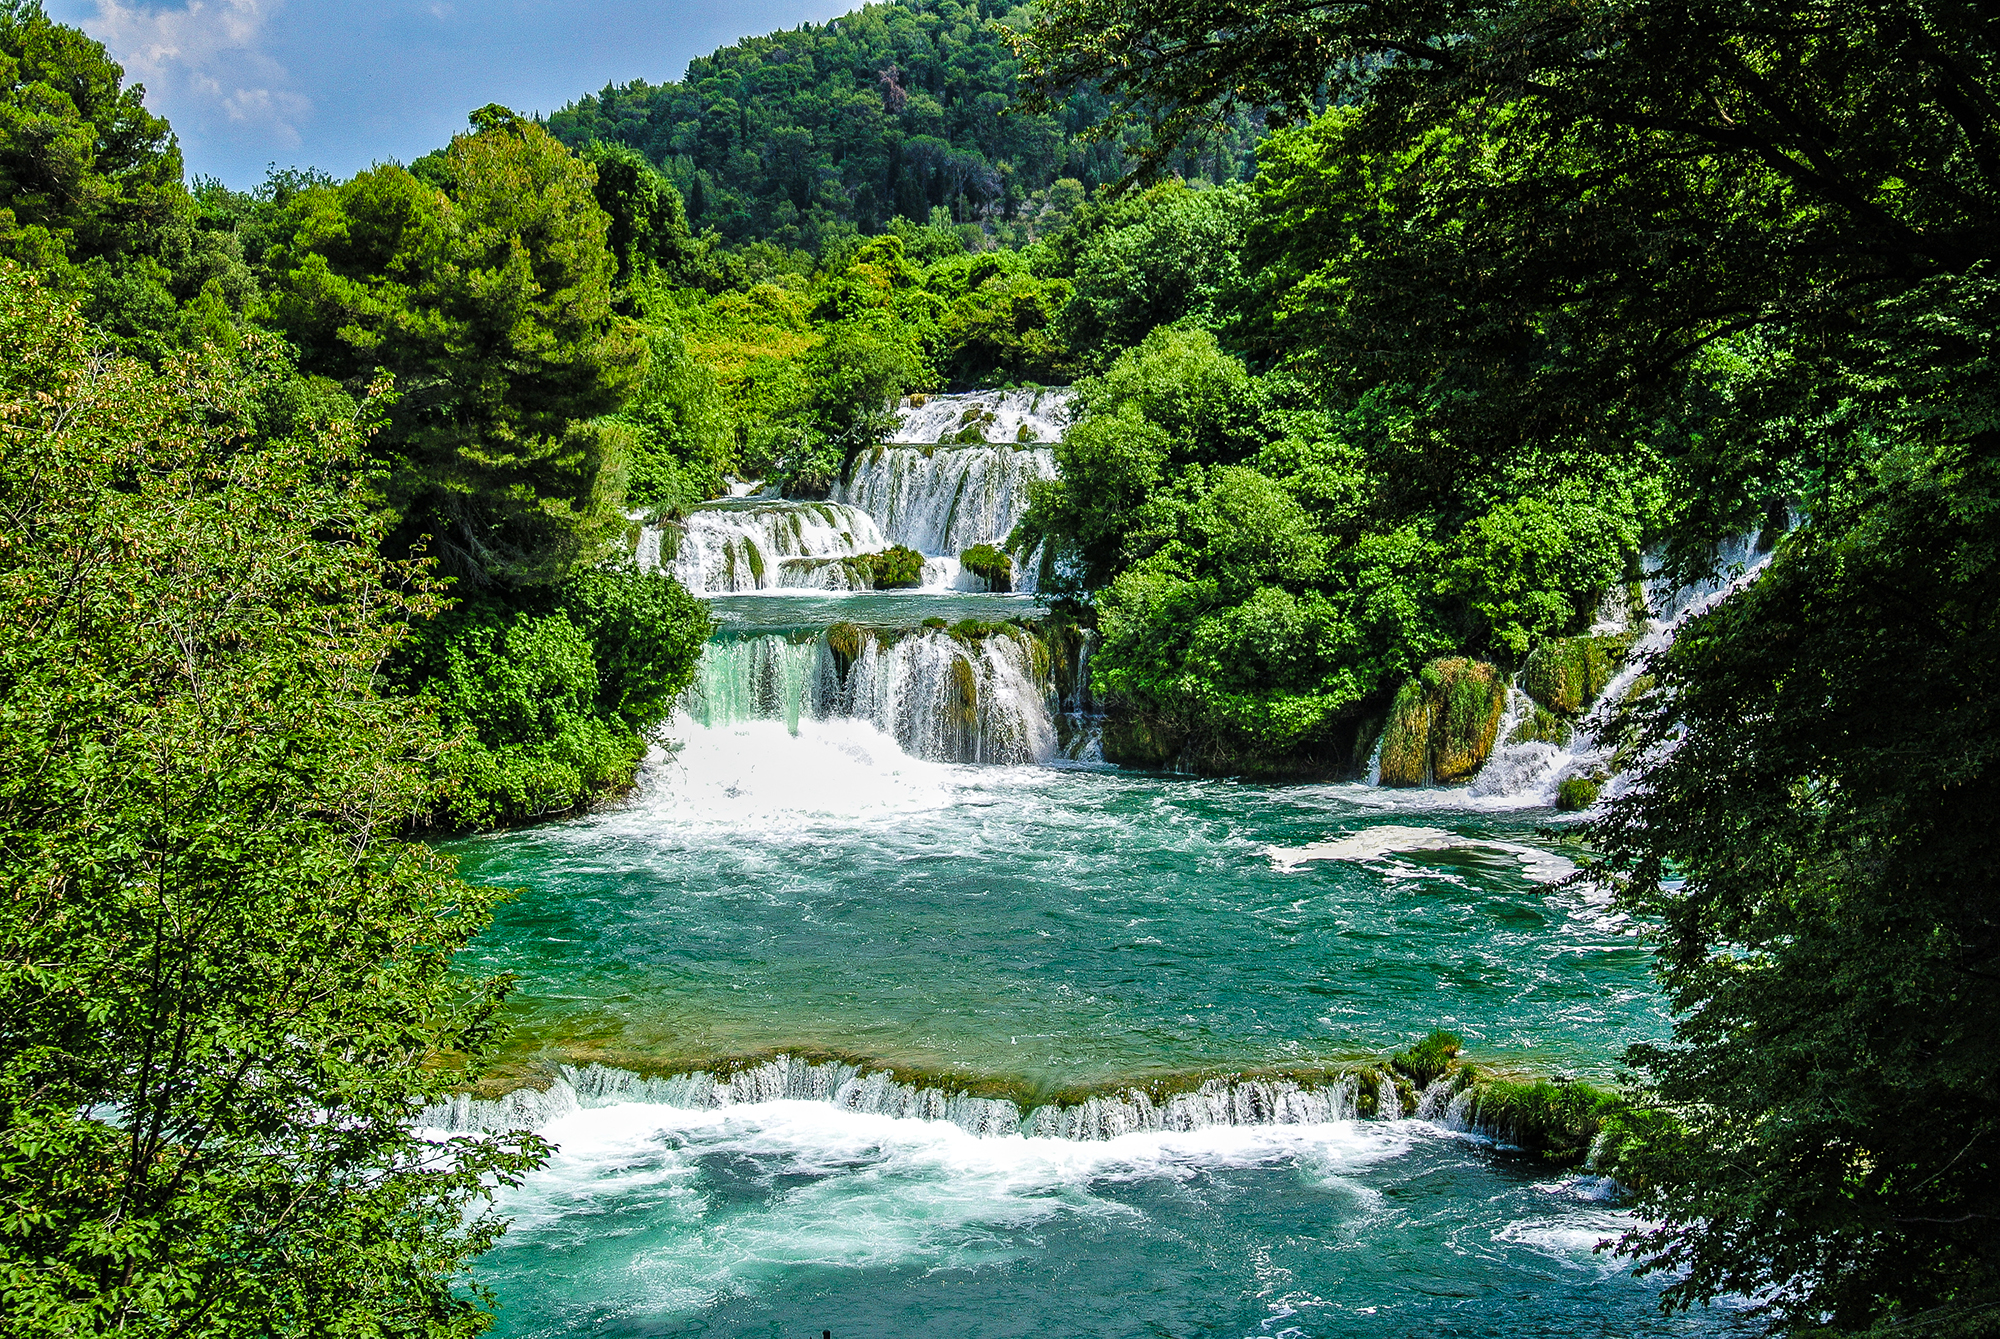 Travel Background Hd Wallpapers Free Niagra Falls Krka National Park Wunderscapes Travel